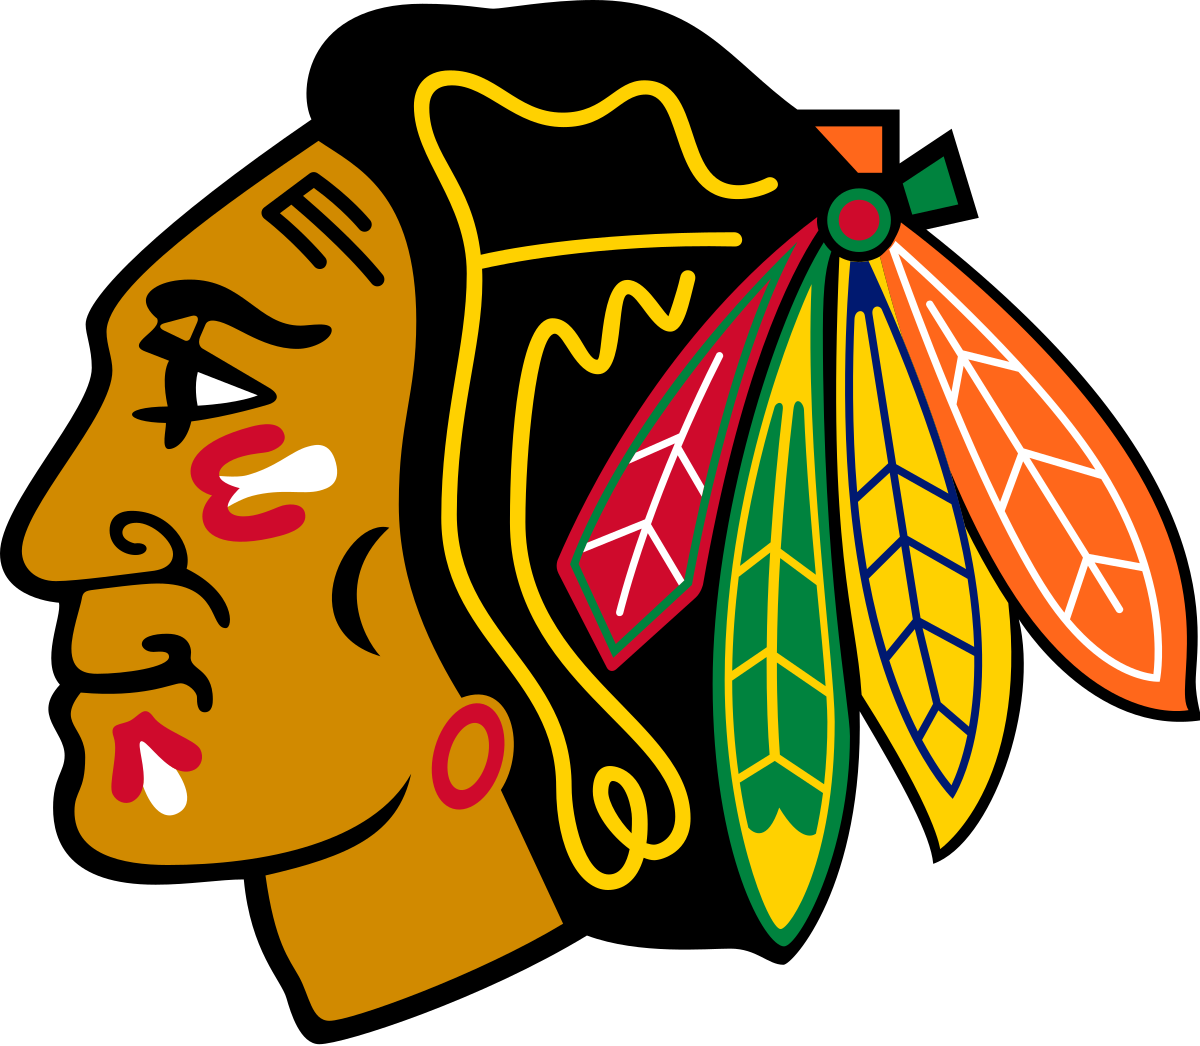 Conflict clipart contention. Chicago blackhawks wikipedia